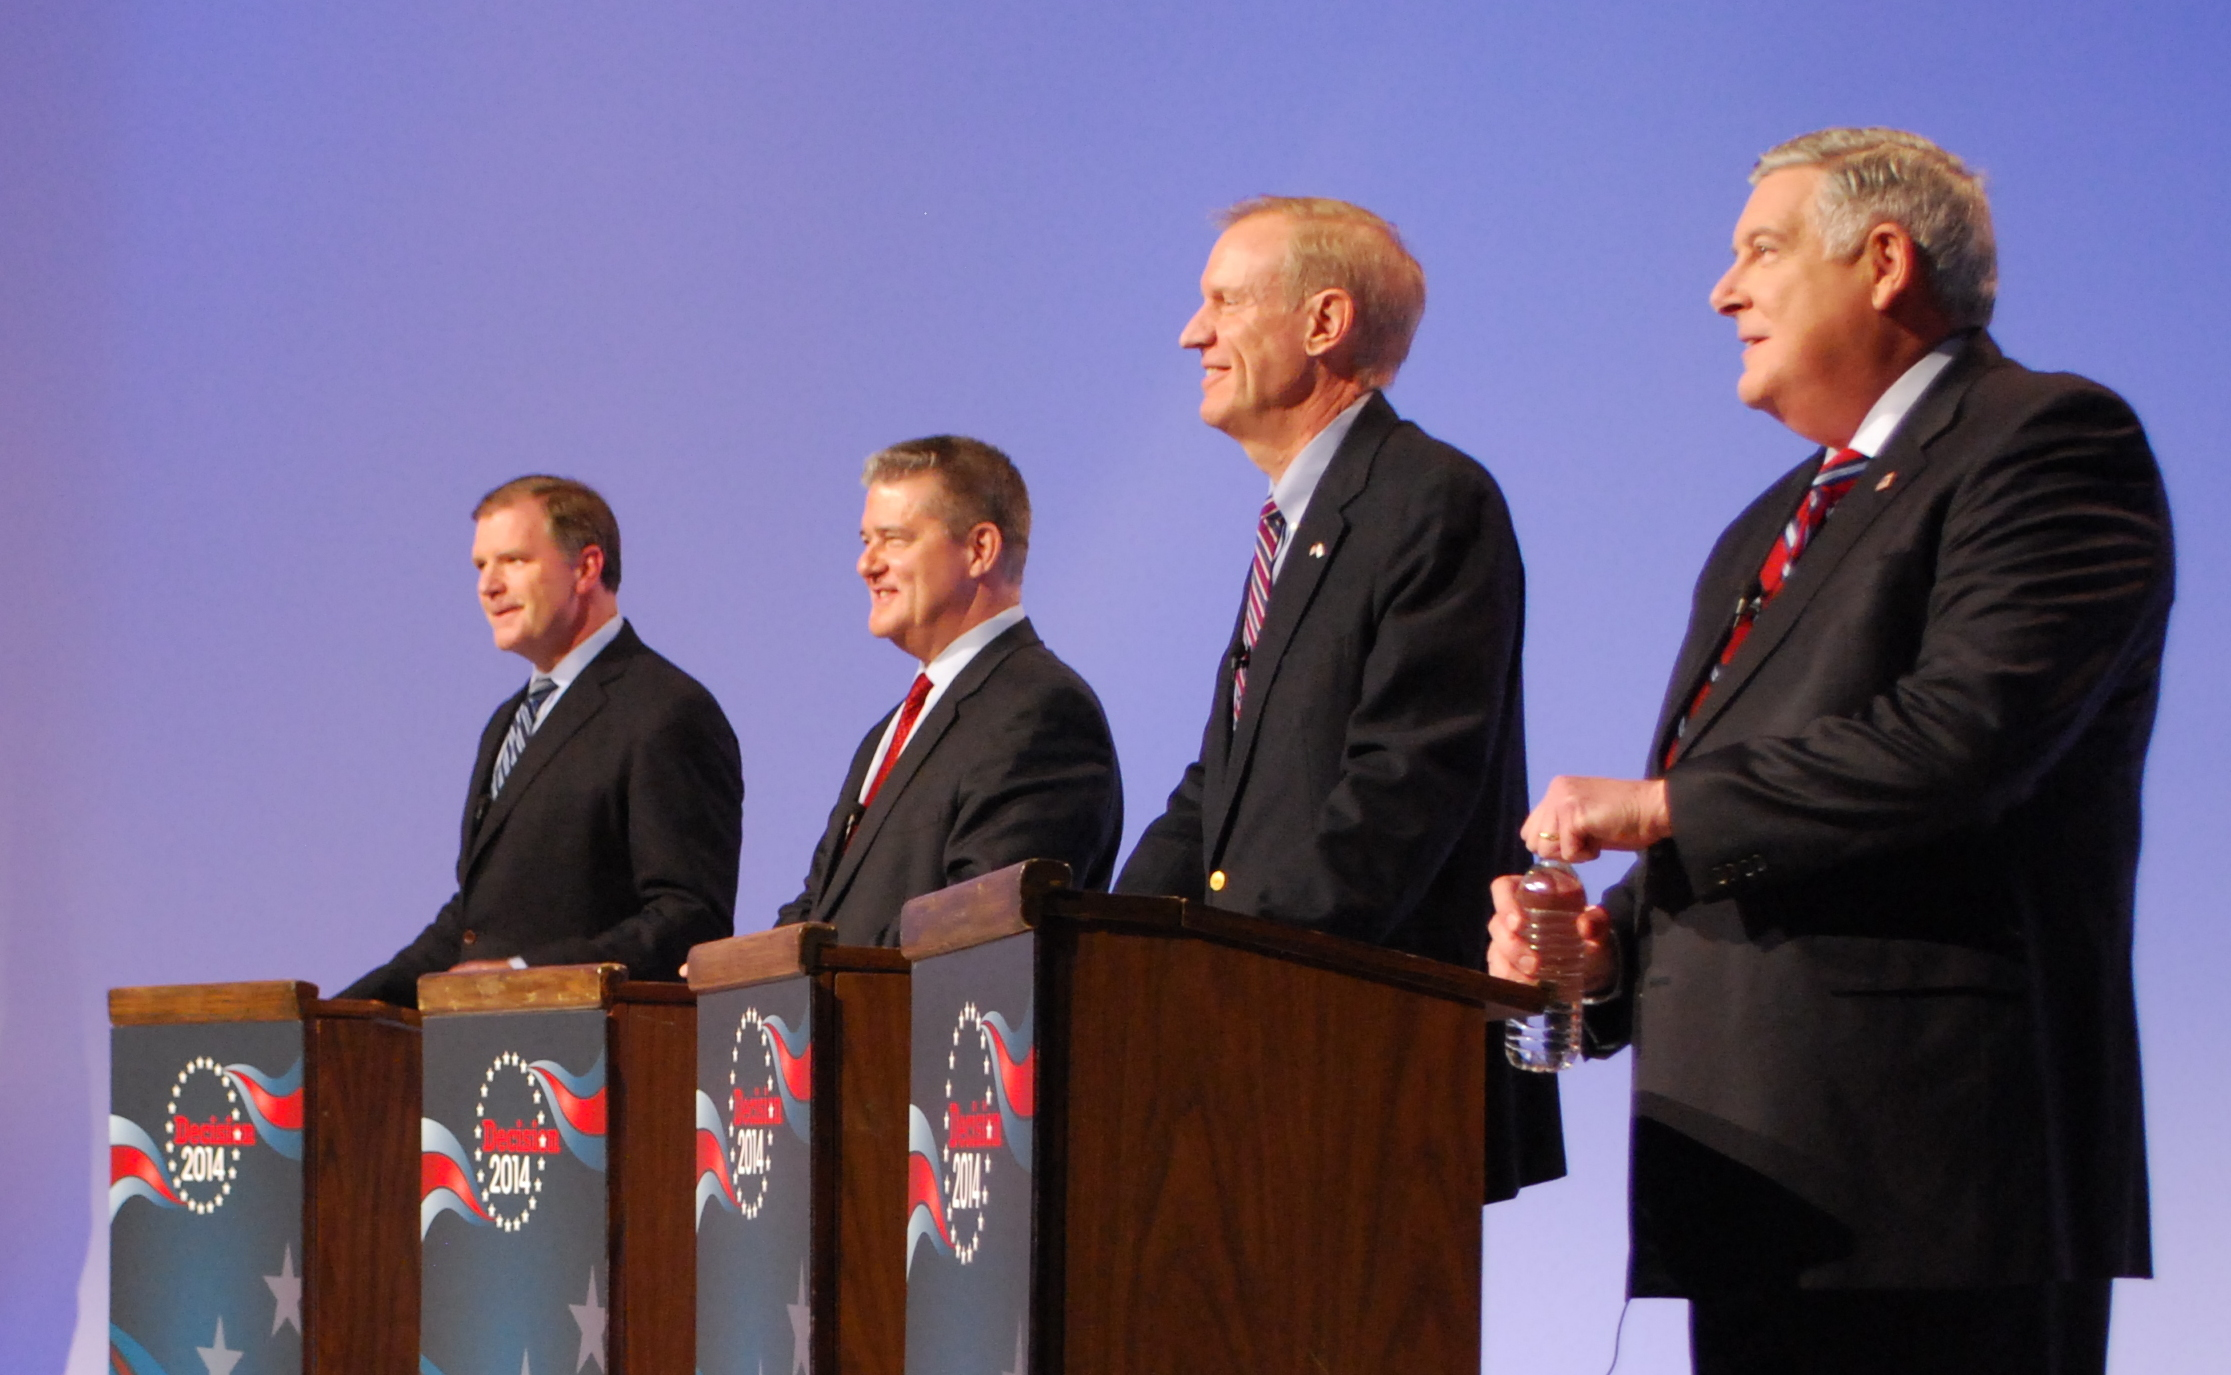 Local Debate Touches on Education